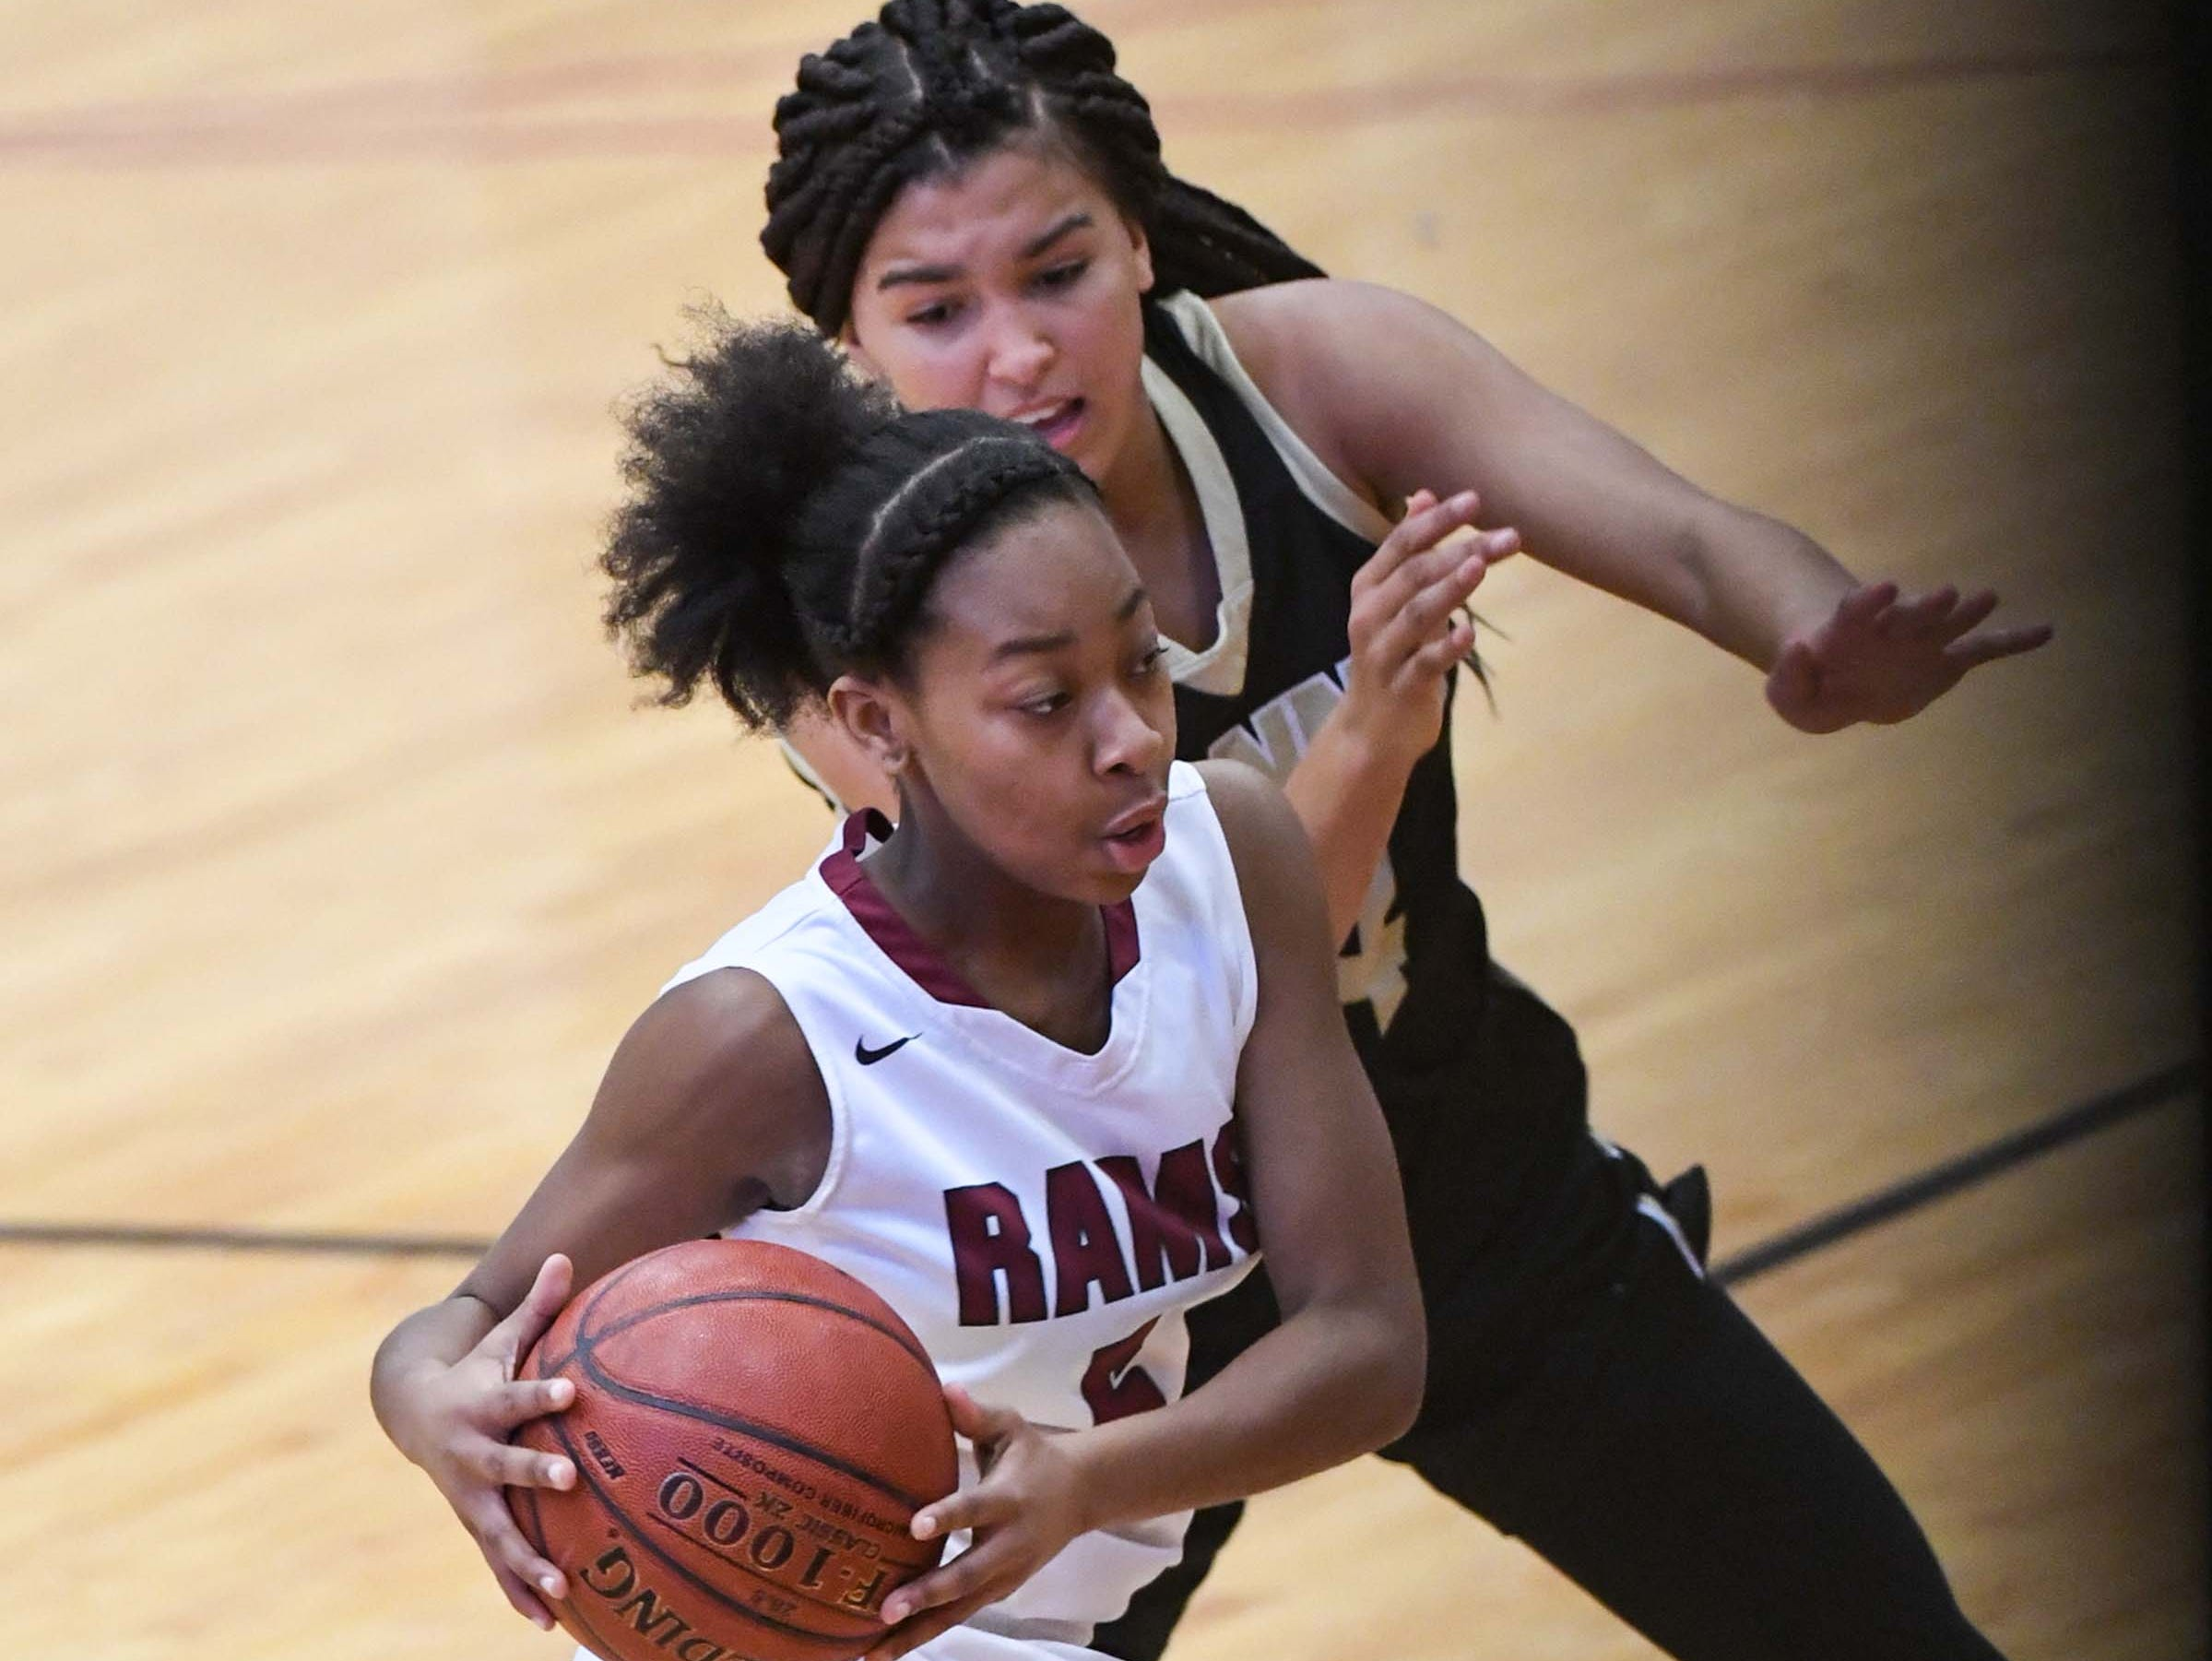 Westside senior Chelsea Adger(5) dribbles near TL Hanna junior Maleia Bracone(24) during the fourth quarter at Westside High School in Anderson on Friday. Westside won 54-46.